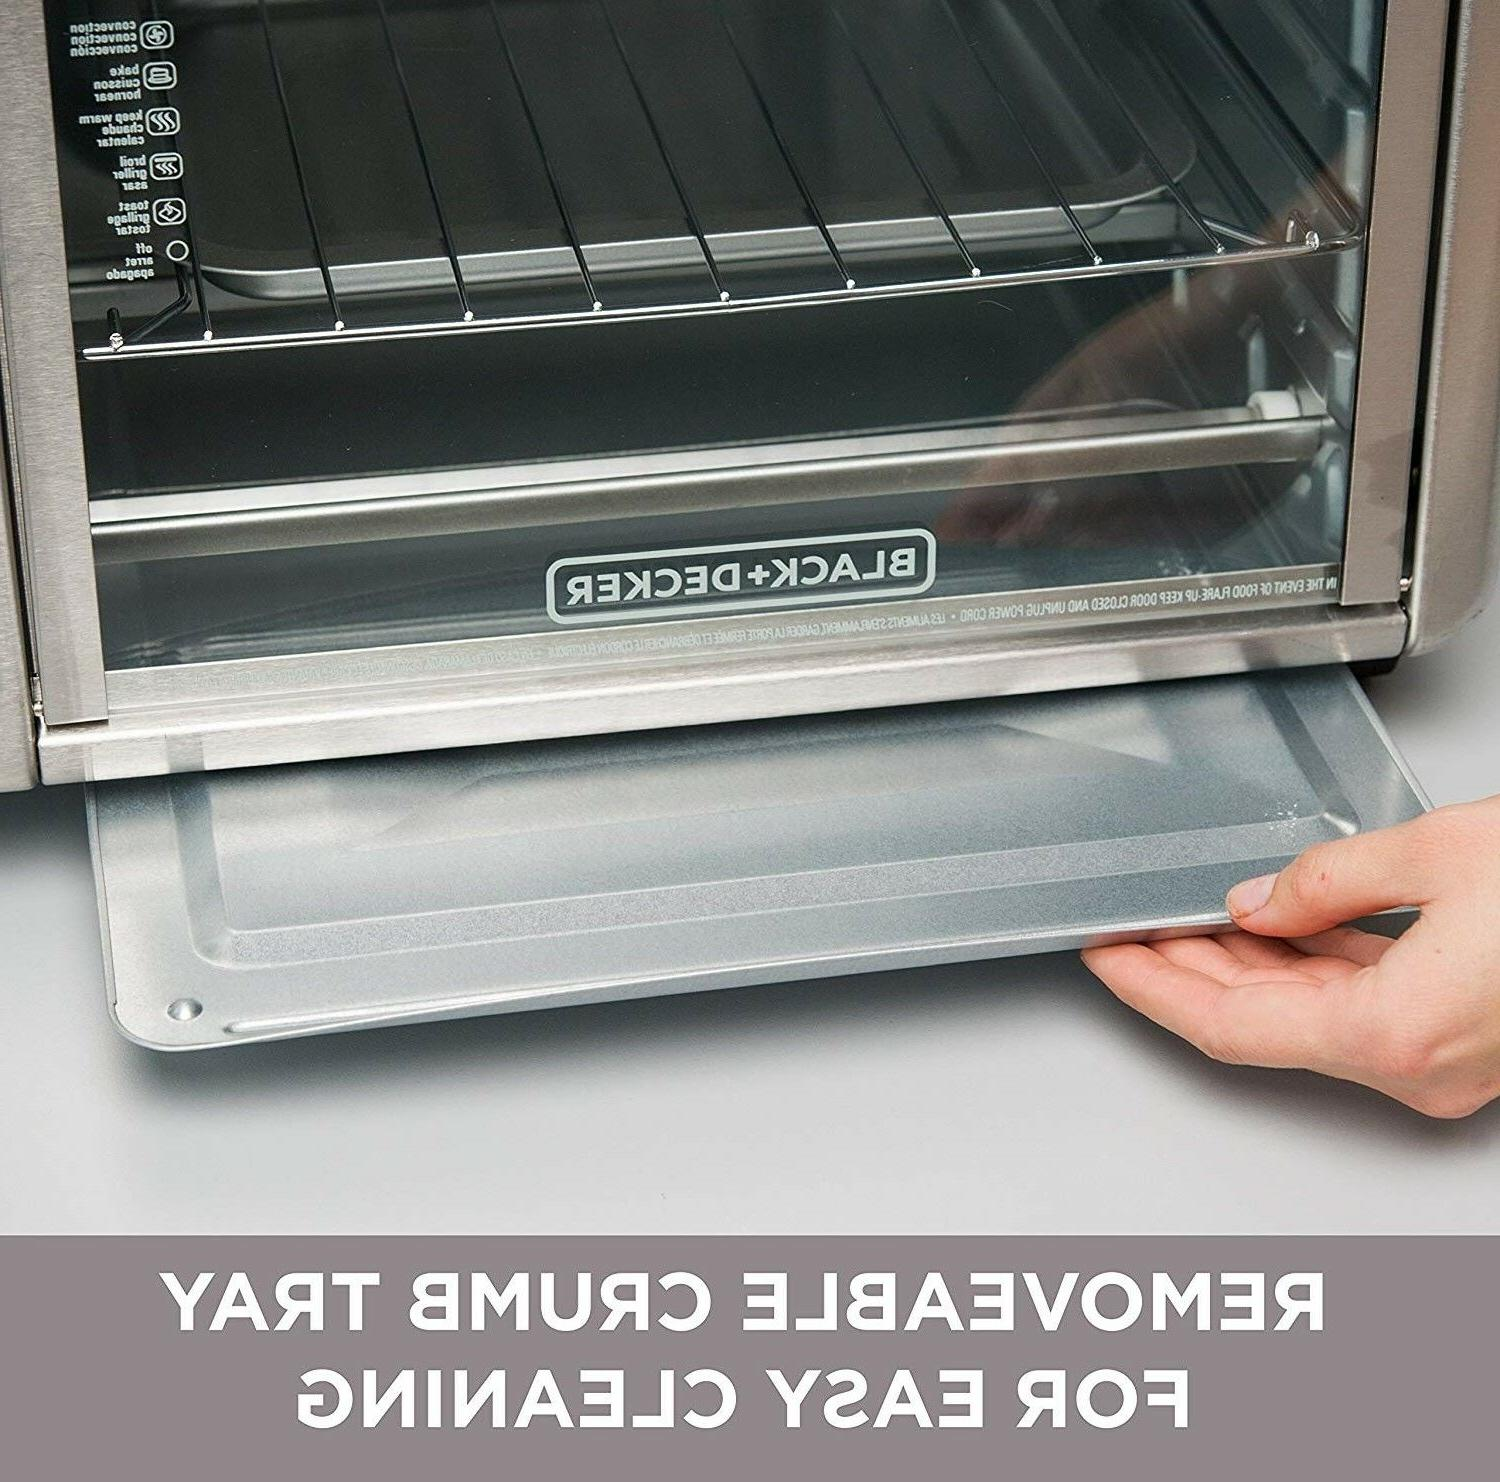 Commercial Decker Stainless Countertop Toaster Bake